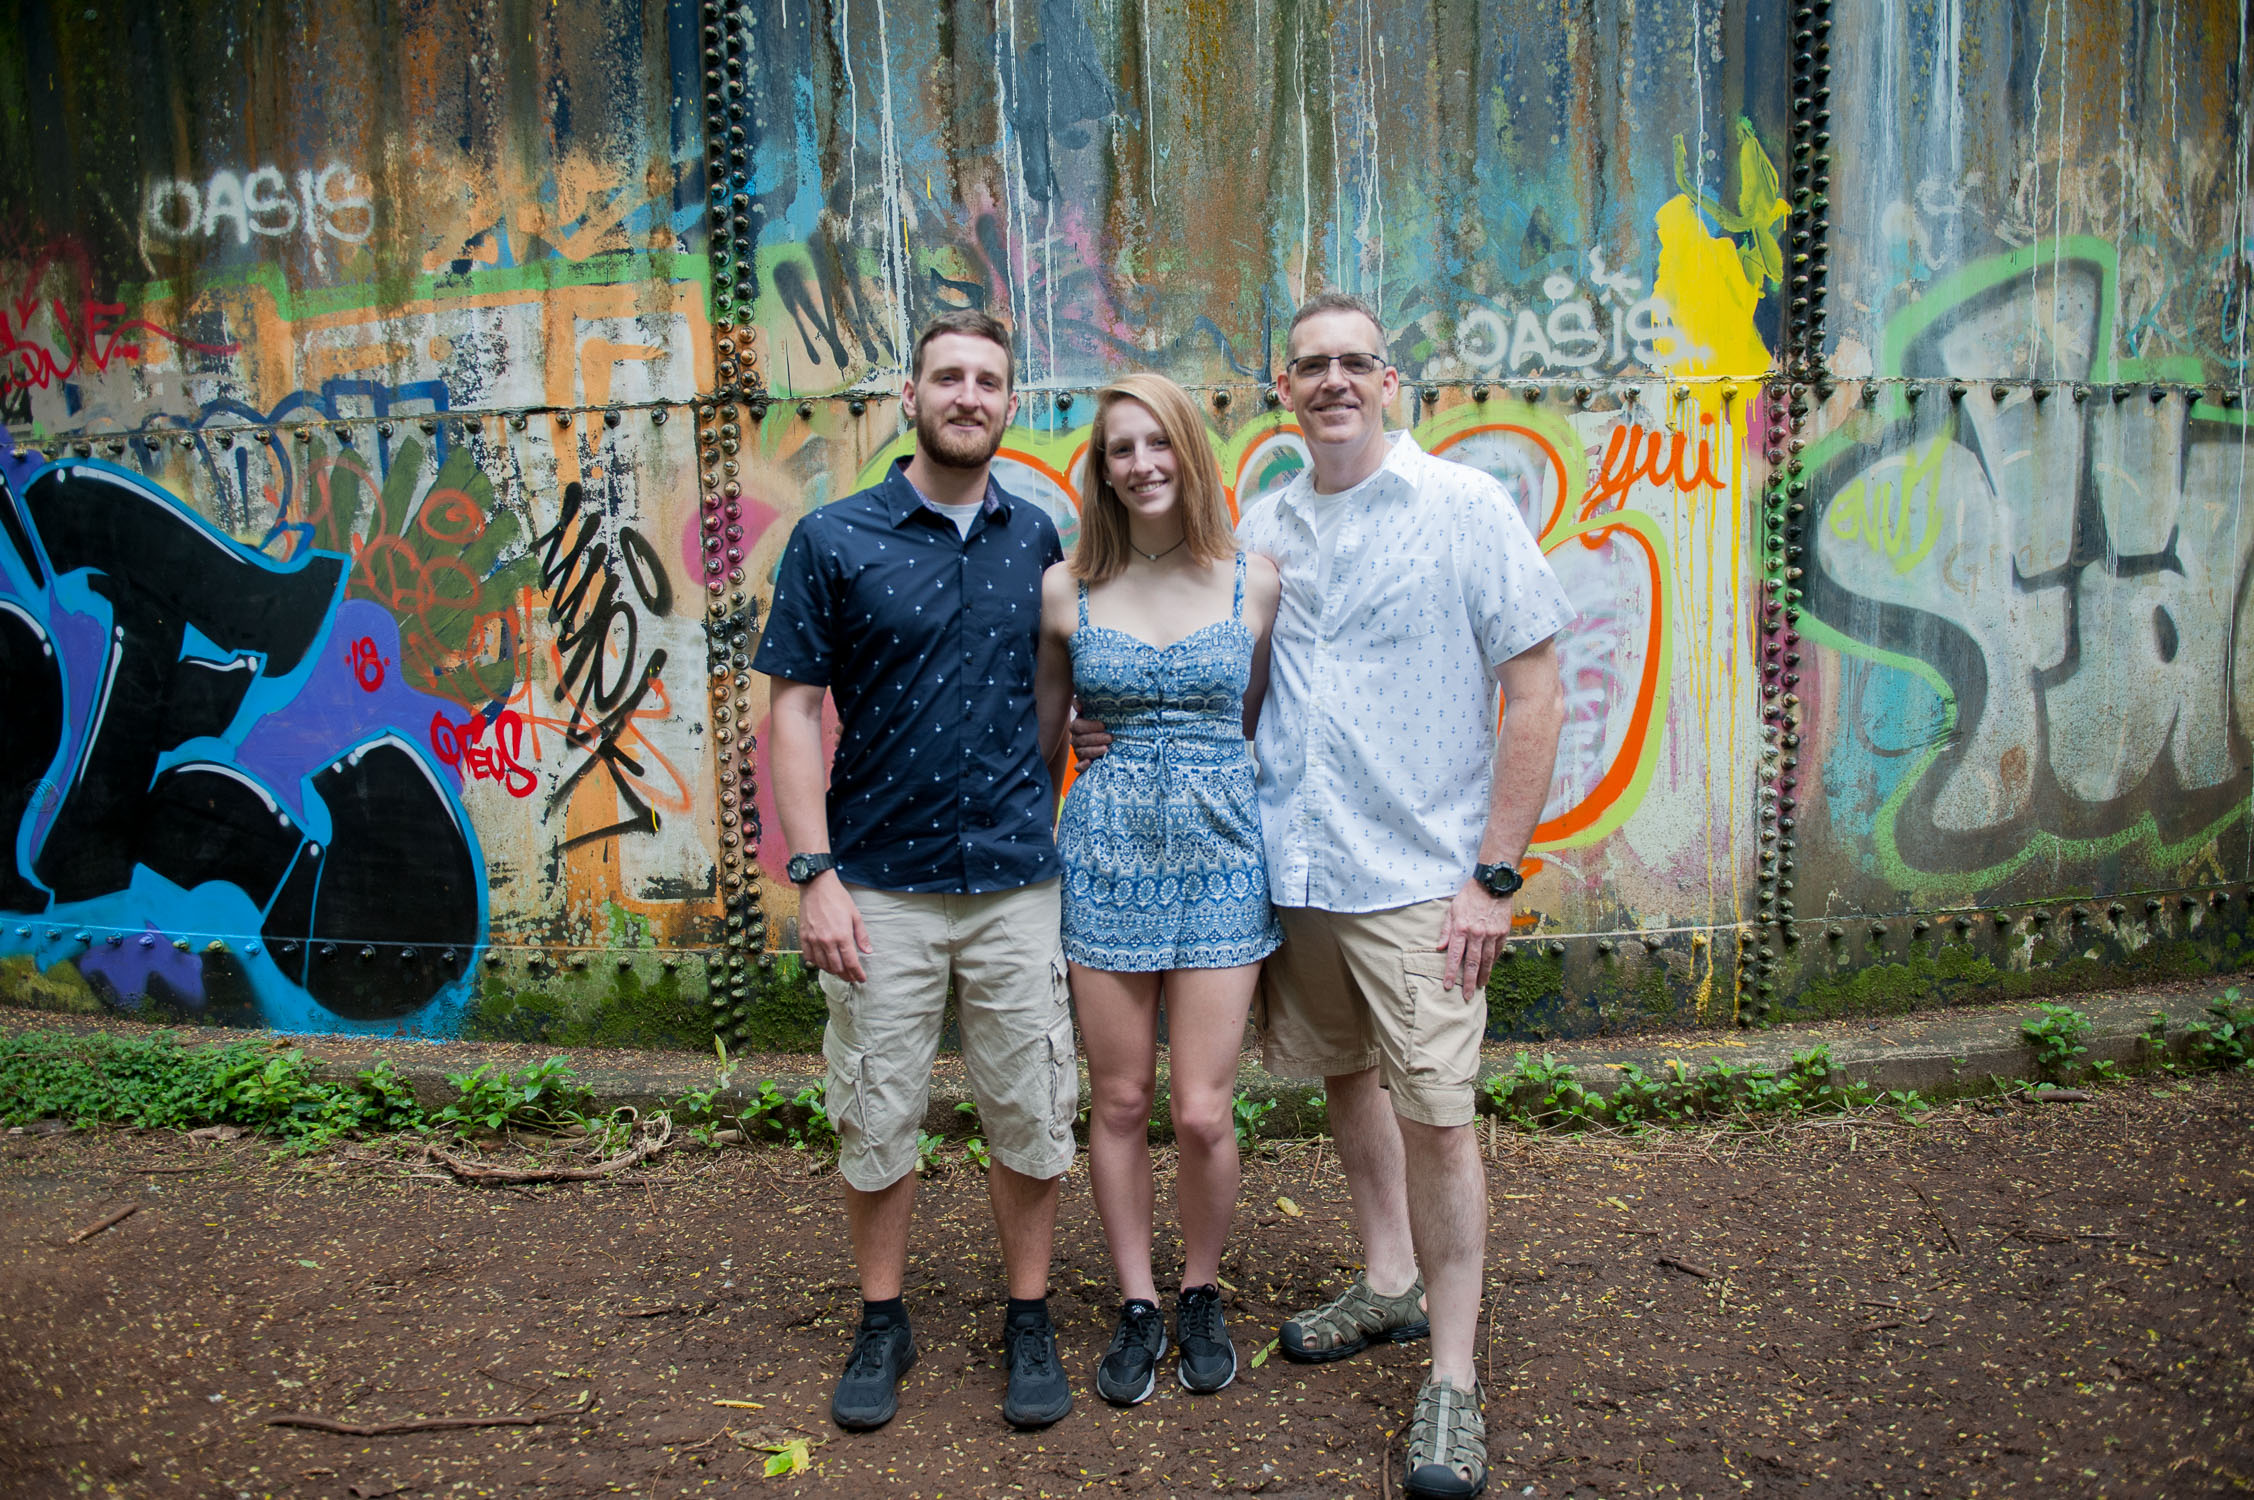 Family Photo in front of grafitti in kaneohe